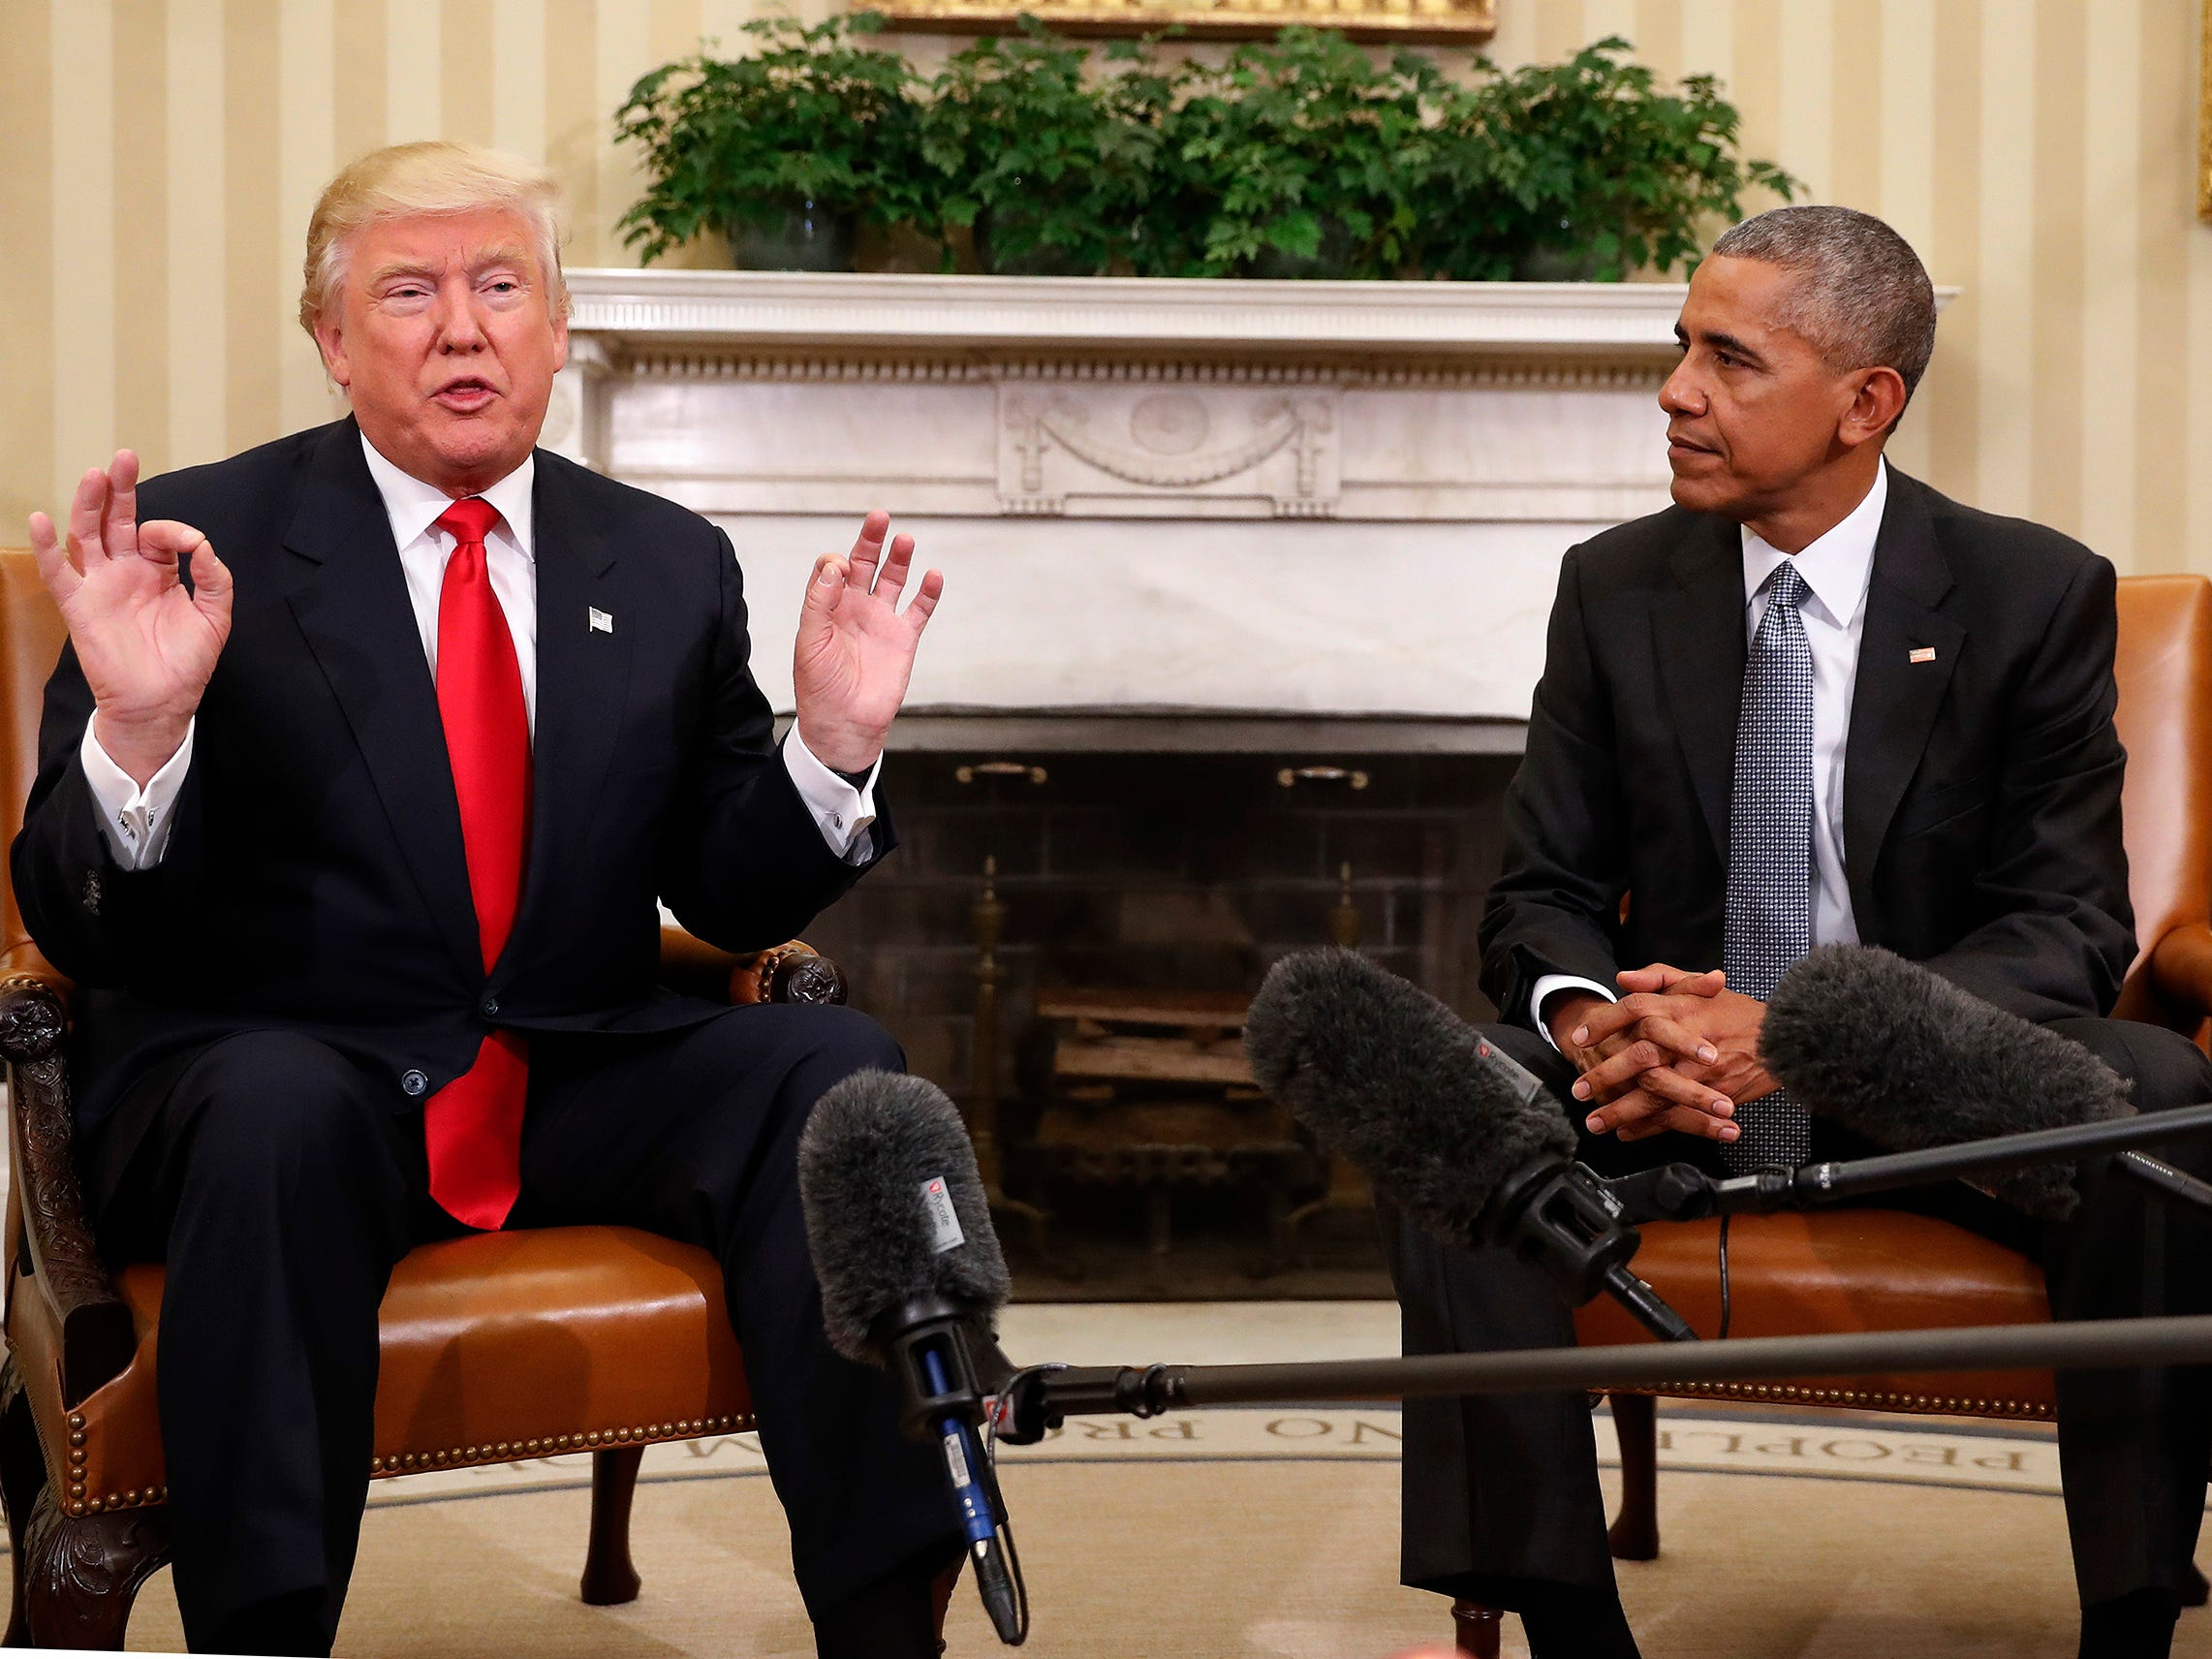 Trump is achieving his goal of being the un-Obama, except on Middle East wars